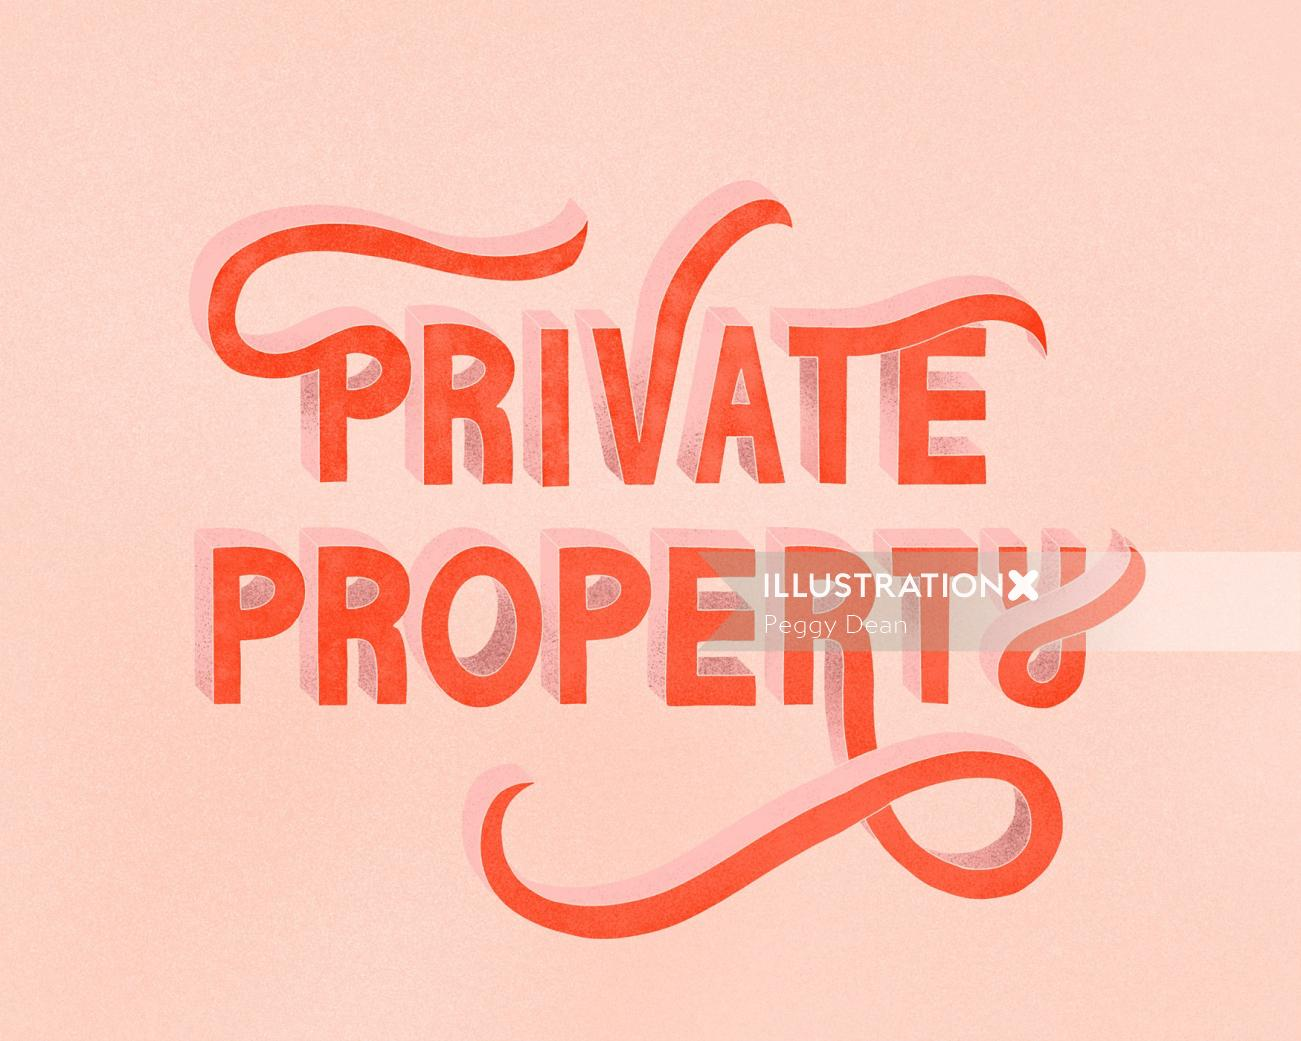 Private property block lettering with flourishes